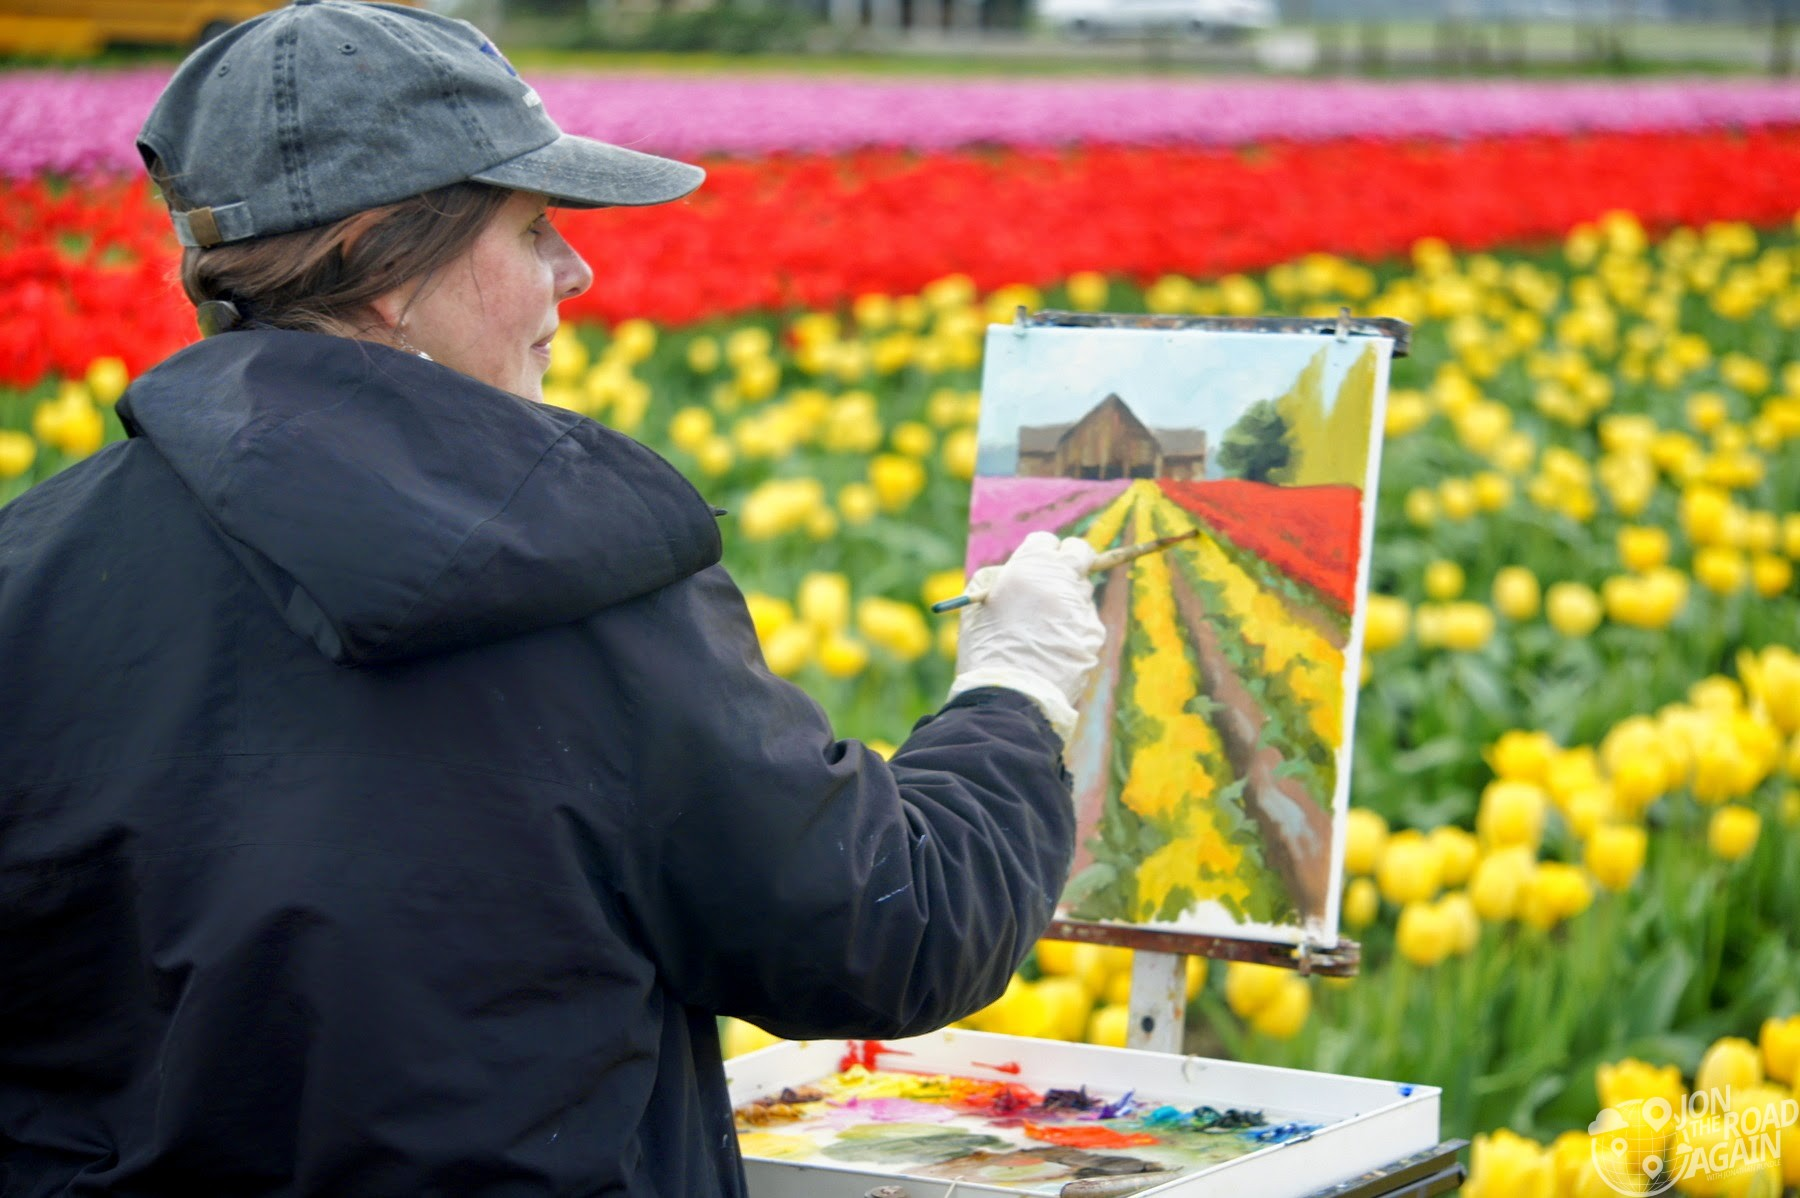 lady painting plein air at Skagit Vallet Tulip Festival